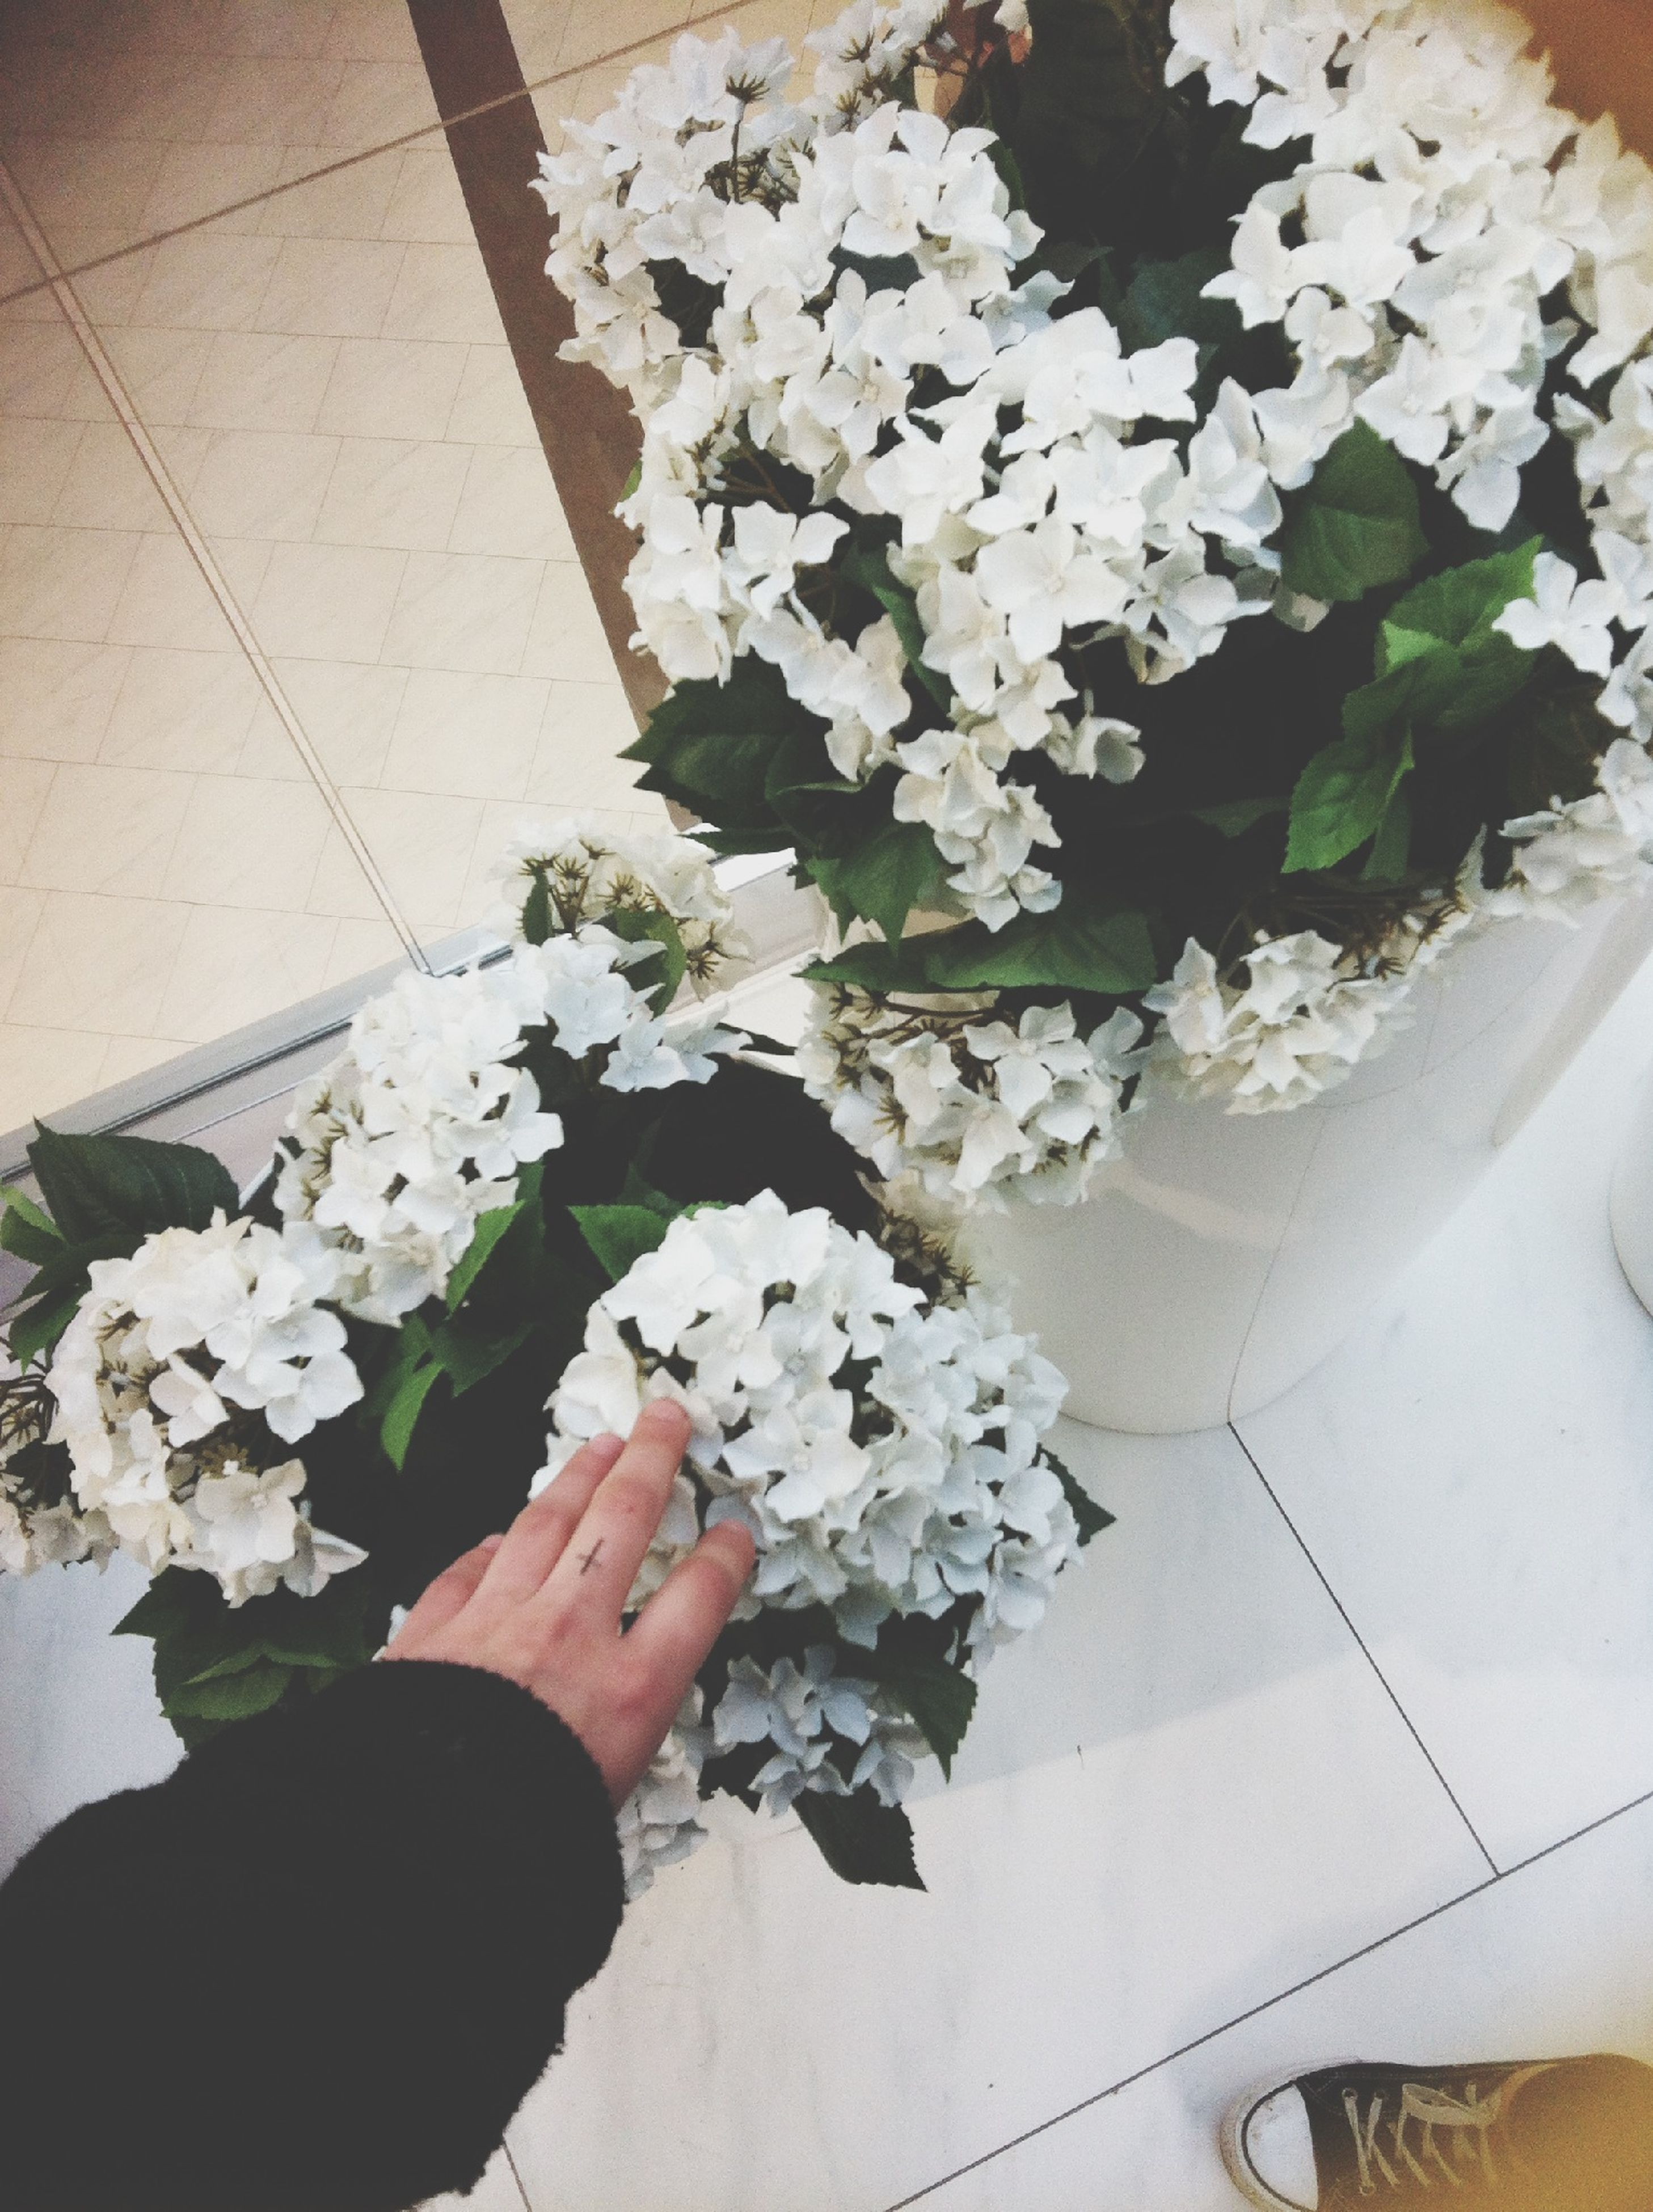 flower, high angle view, indoors, freshness, person, personal perspective, petal, white color, low section, fragility, plant, potted plant, part of, leaf, vase